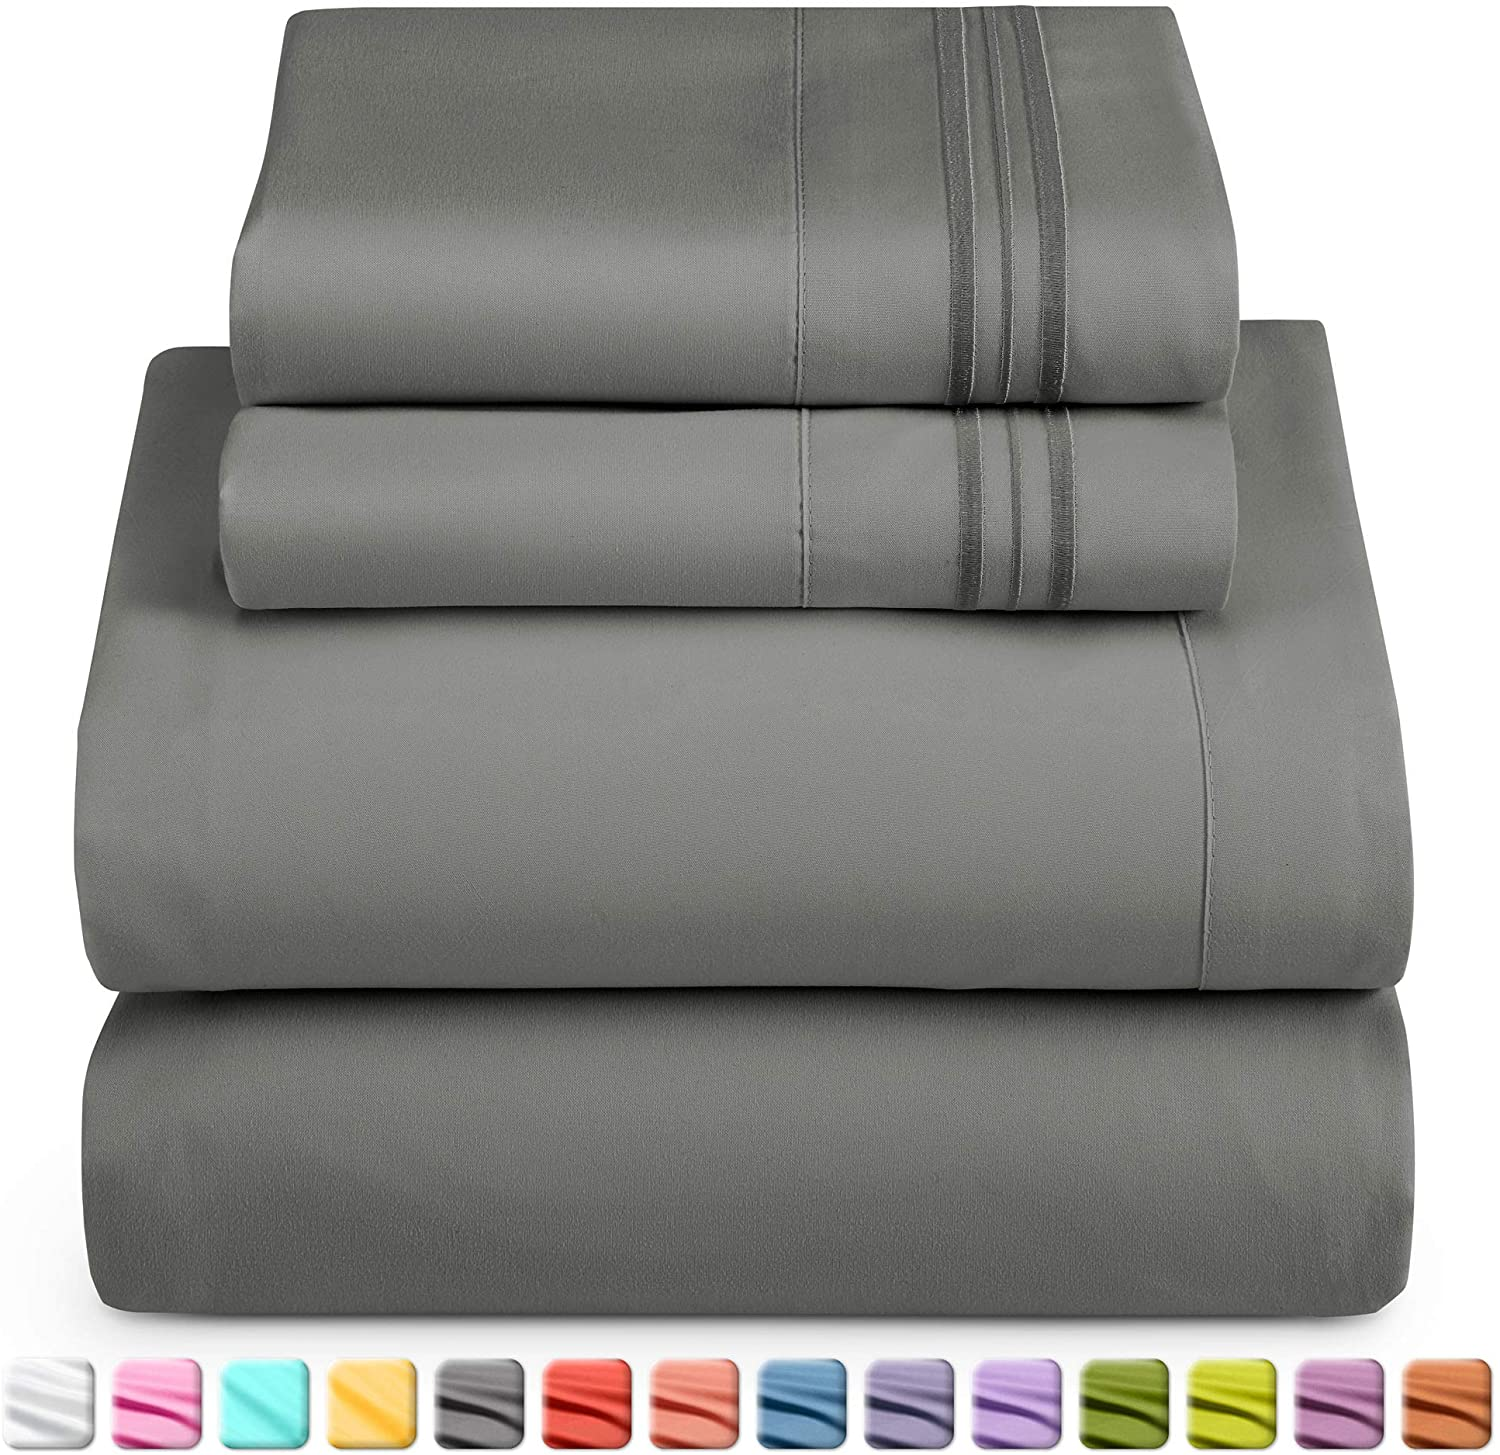 Nestl Deep Pocket Twin XL Sheets: Twin XL Size Bed Sheets with Fitted and Flat Sheet, Pillow Cases - Extra Soft Bedsheet Set with Deep Pockets for Twin XL Sized Mattress - Charcoal Stone Gray